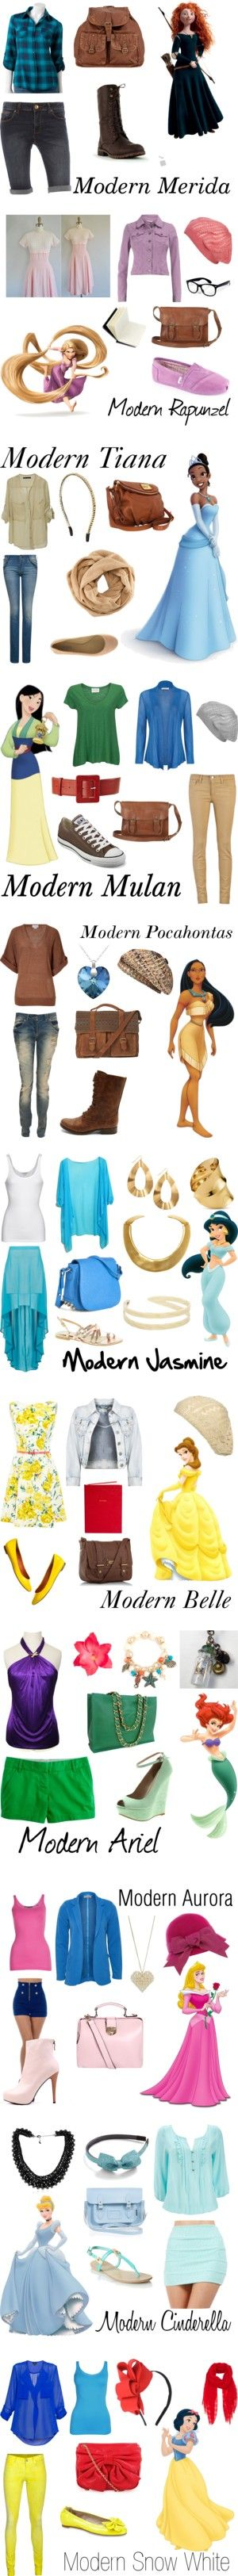 Modern Disney Princesses by sharkbitegal on Polyvore featuring Merida, Dorothy Perkins, T-shirt & Jeans, modern, merida brave disney modern era time period america scotland scottish american blue brown, Disney, TOMS, Fat Face, Wet Seal and Spinning Hat